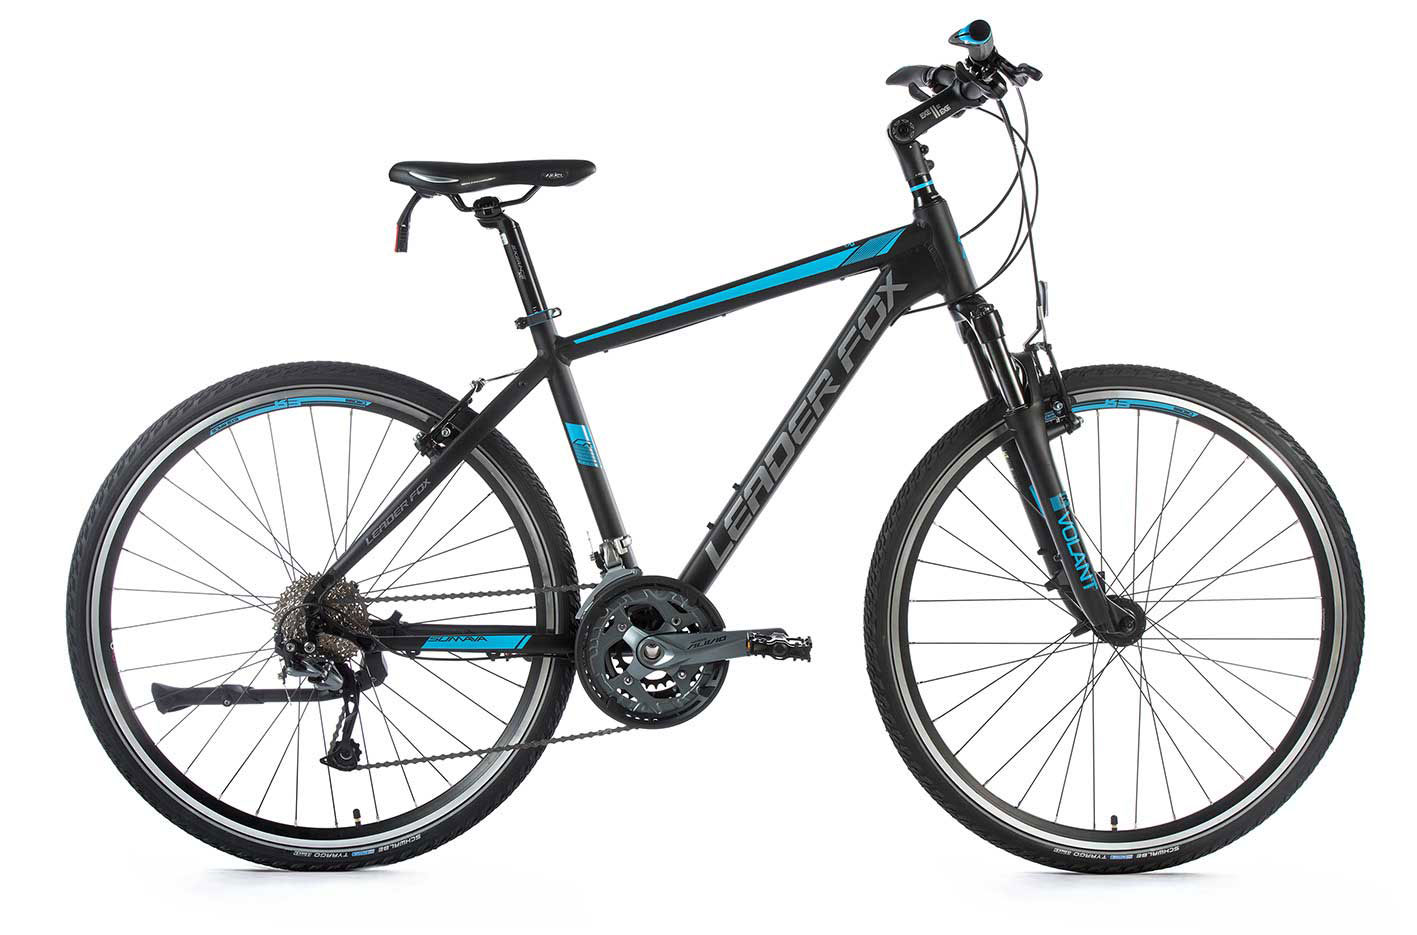 Bicicleta de cross Leader Fox Sumava Gent